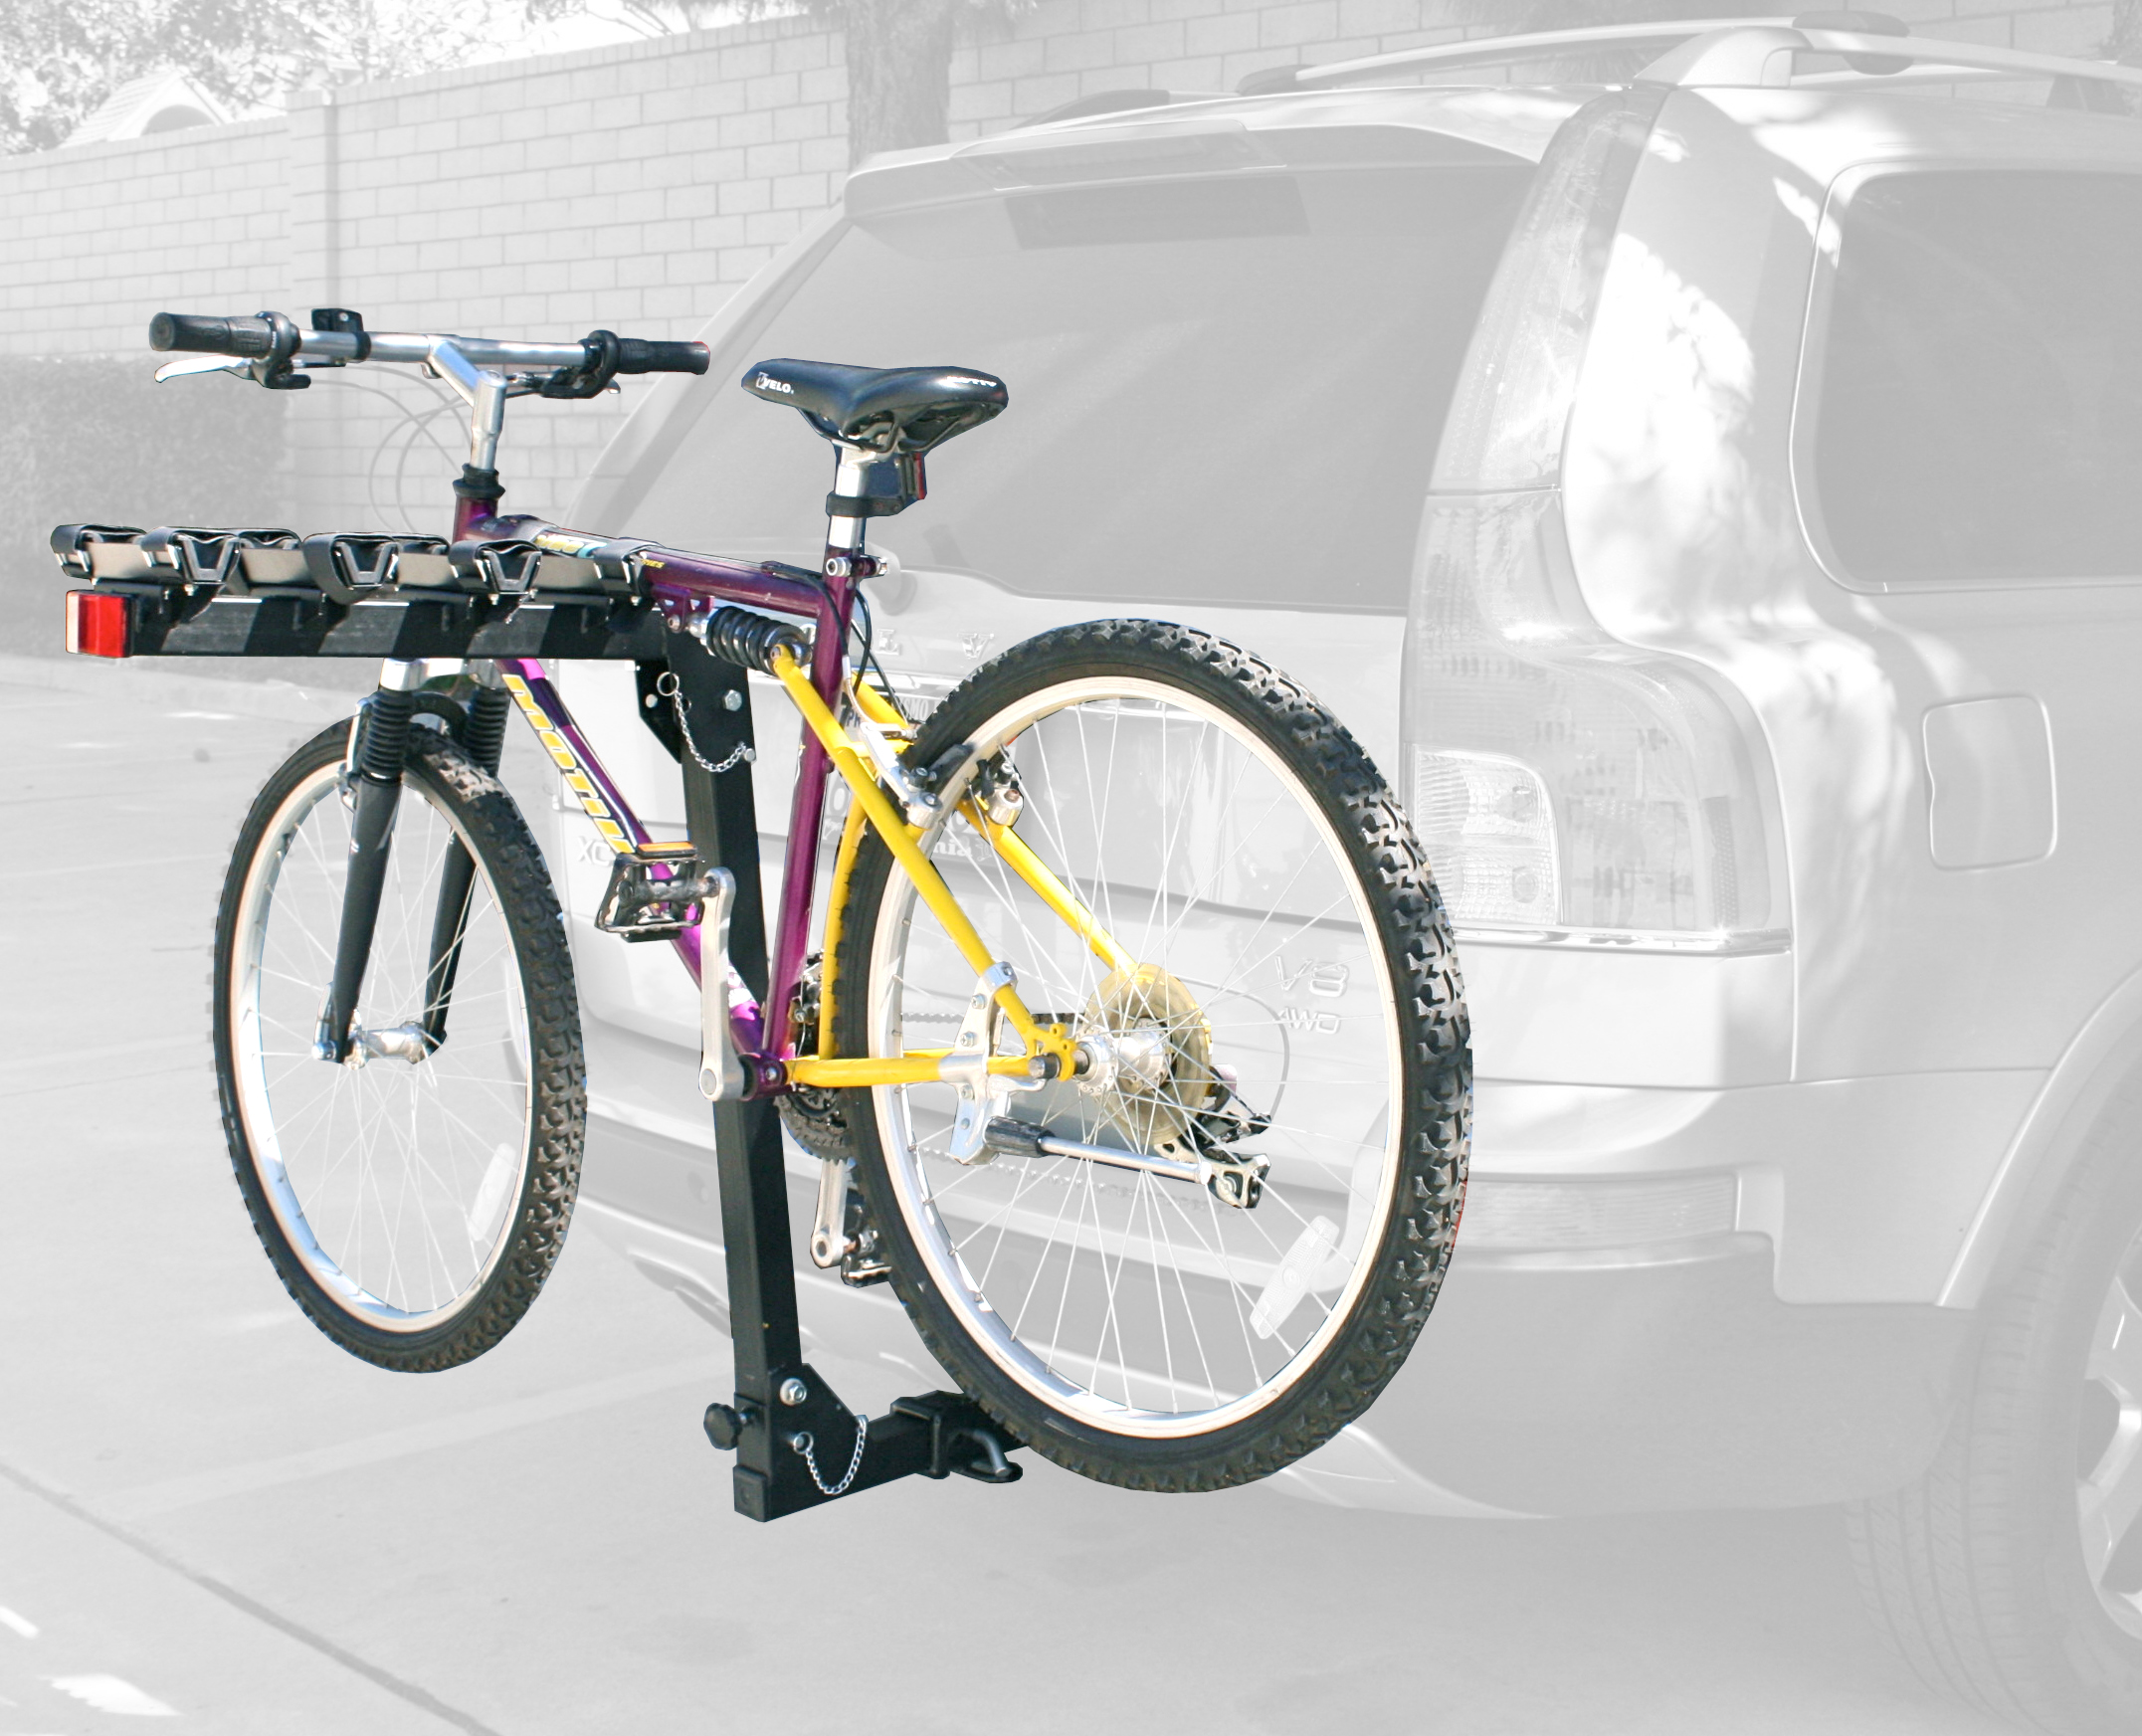 70201 4-Bike Rack Photo Main.jpg